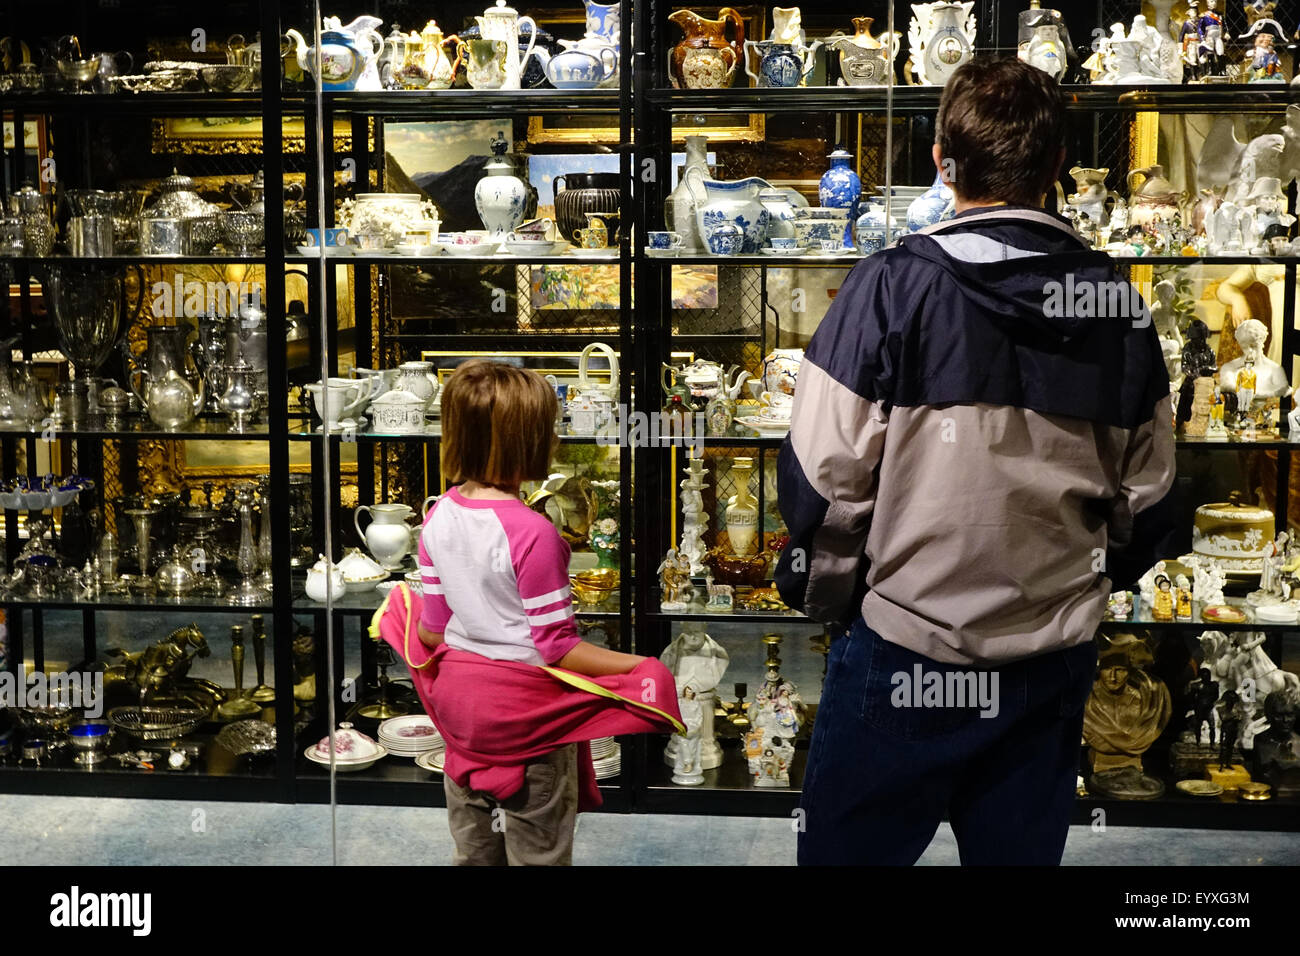 Father and daughter stand in front of The Helene B. Roberson Visible Storage Building contains about 6,000 art objects. - Stock Image